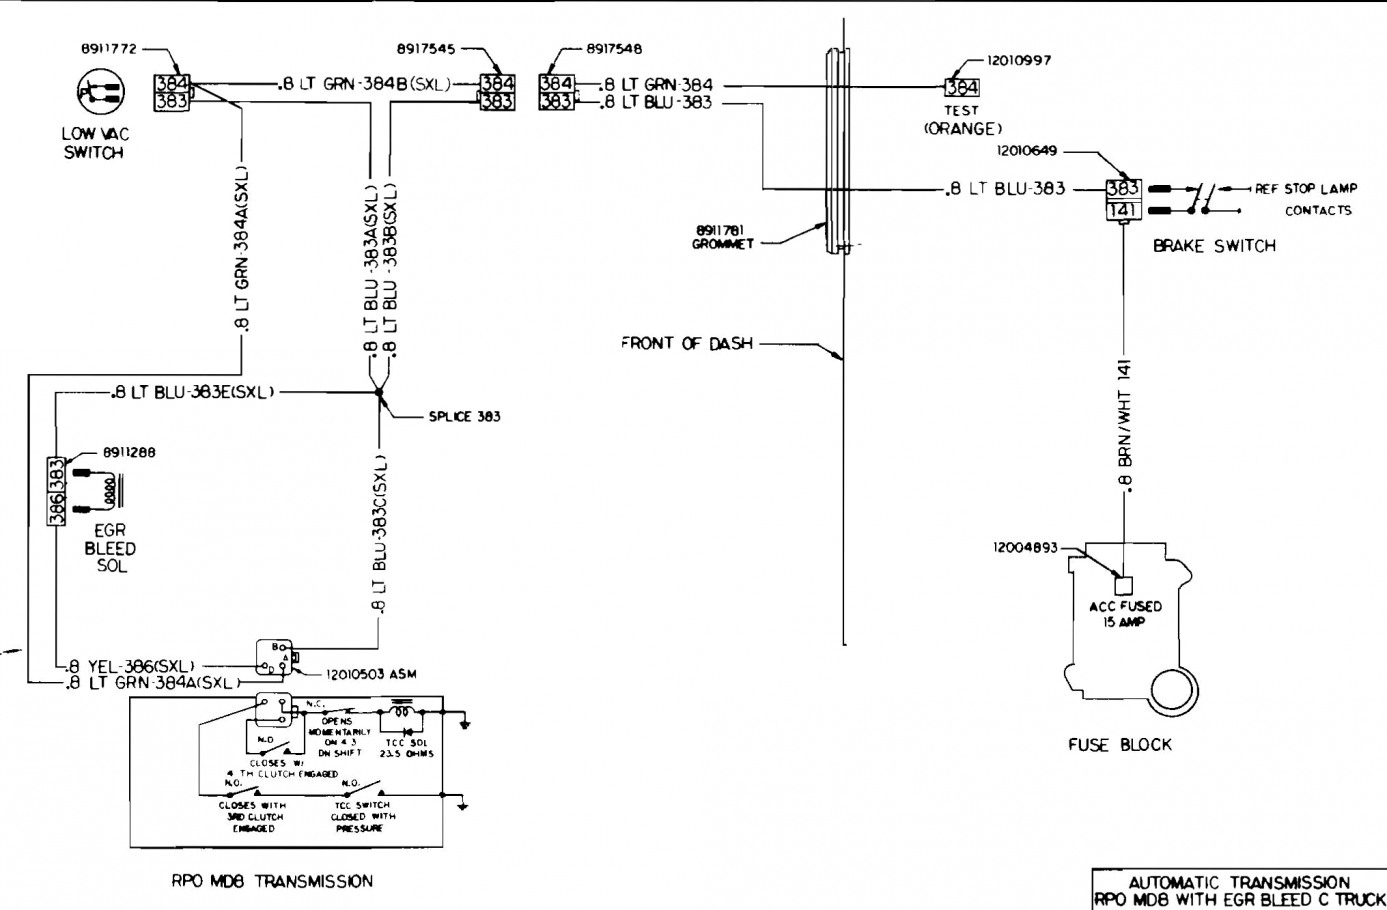 700R4 Wiring Diagram Factory | Wiring Diagram - 700R4 Torque Converter Lockup Wiring Diagram